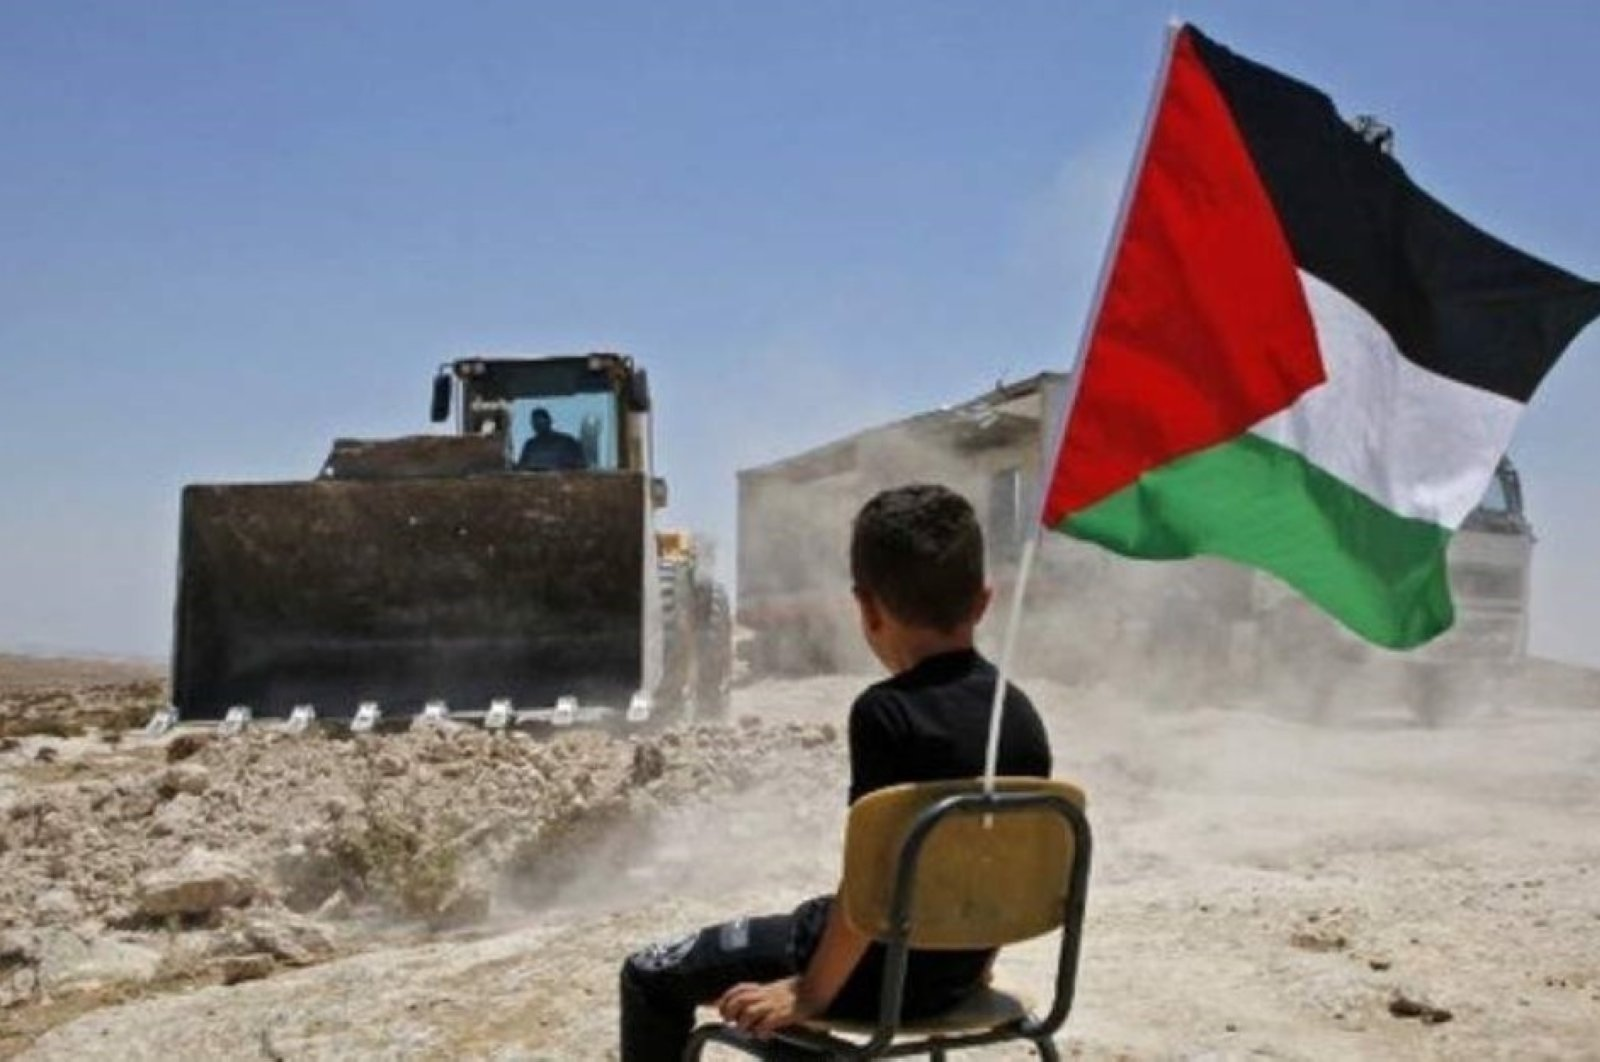 A Palestinian boy sits on a chair with a national flag as Israeli authorities demolish a school site in the village of Yatta in the occupied West Bank, July 11, 2018. (AFP Photo)